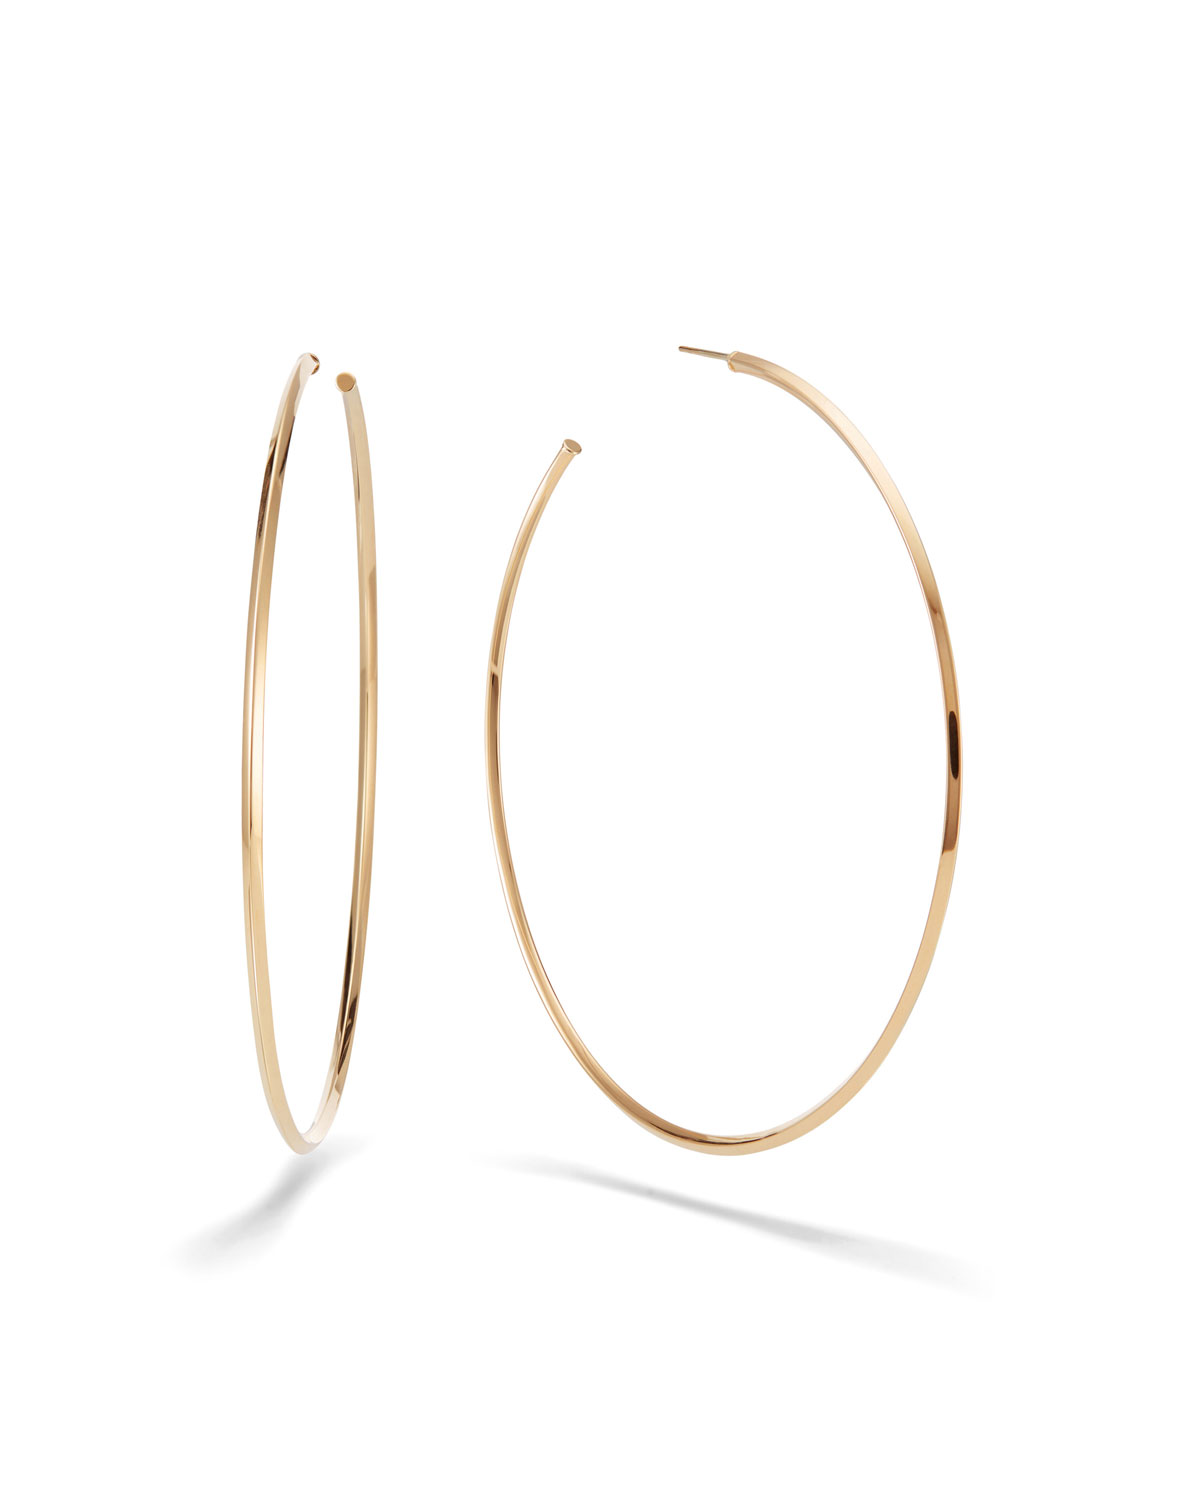 Lana  HOLLOW 14K GOLD SKINNY HOOP EARRINGS